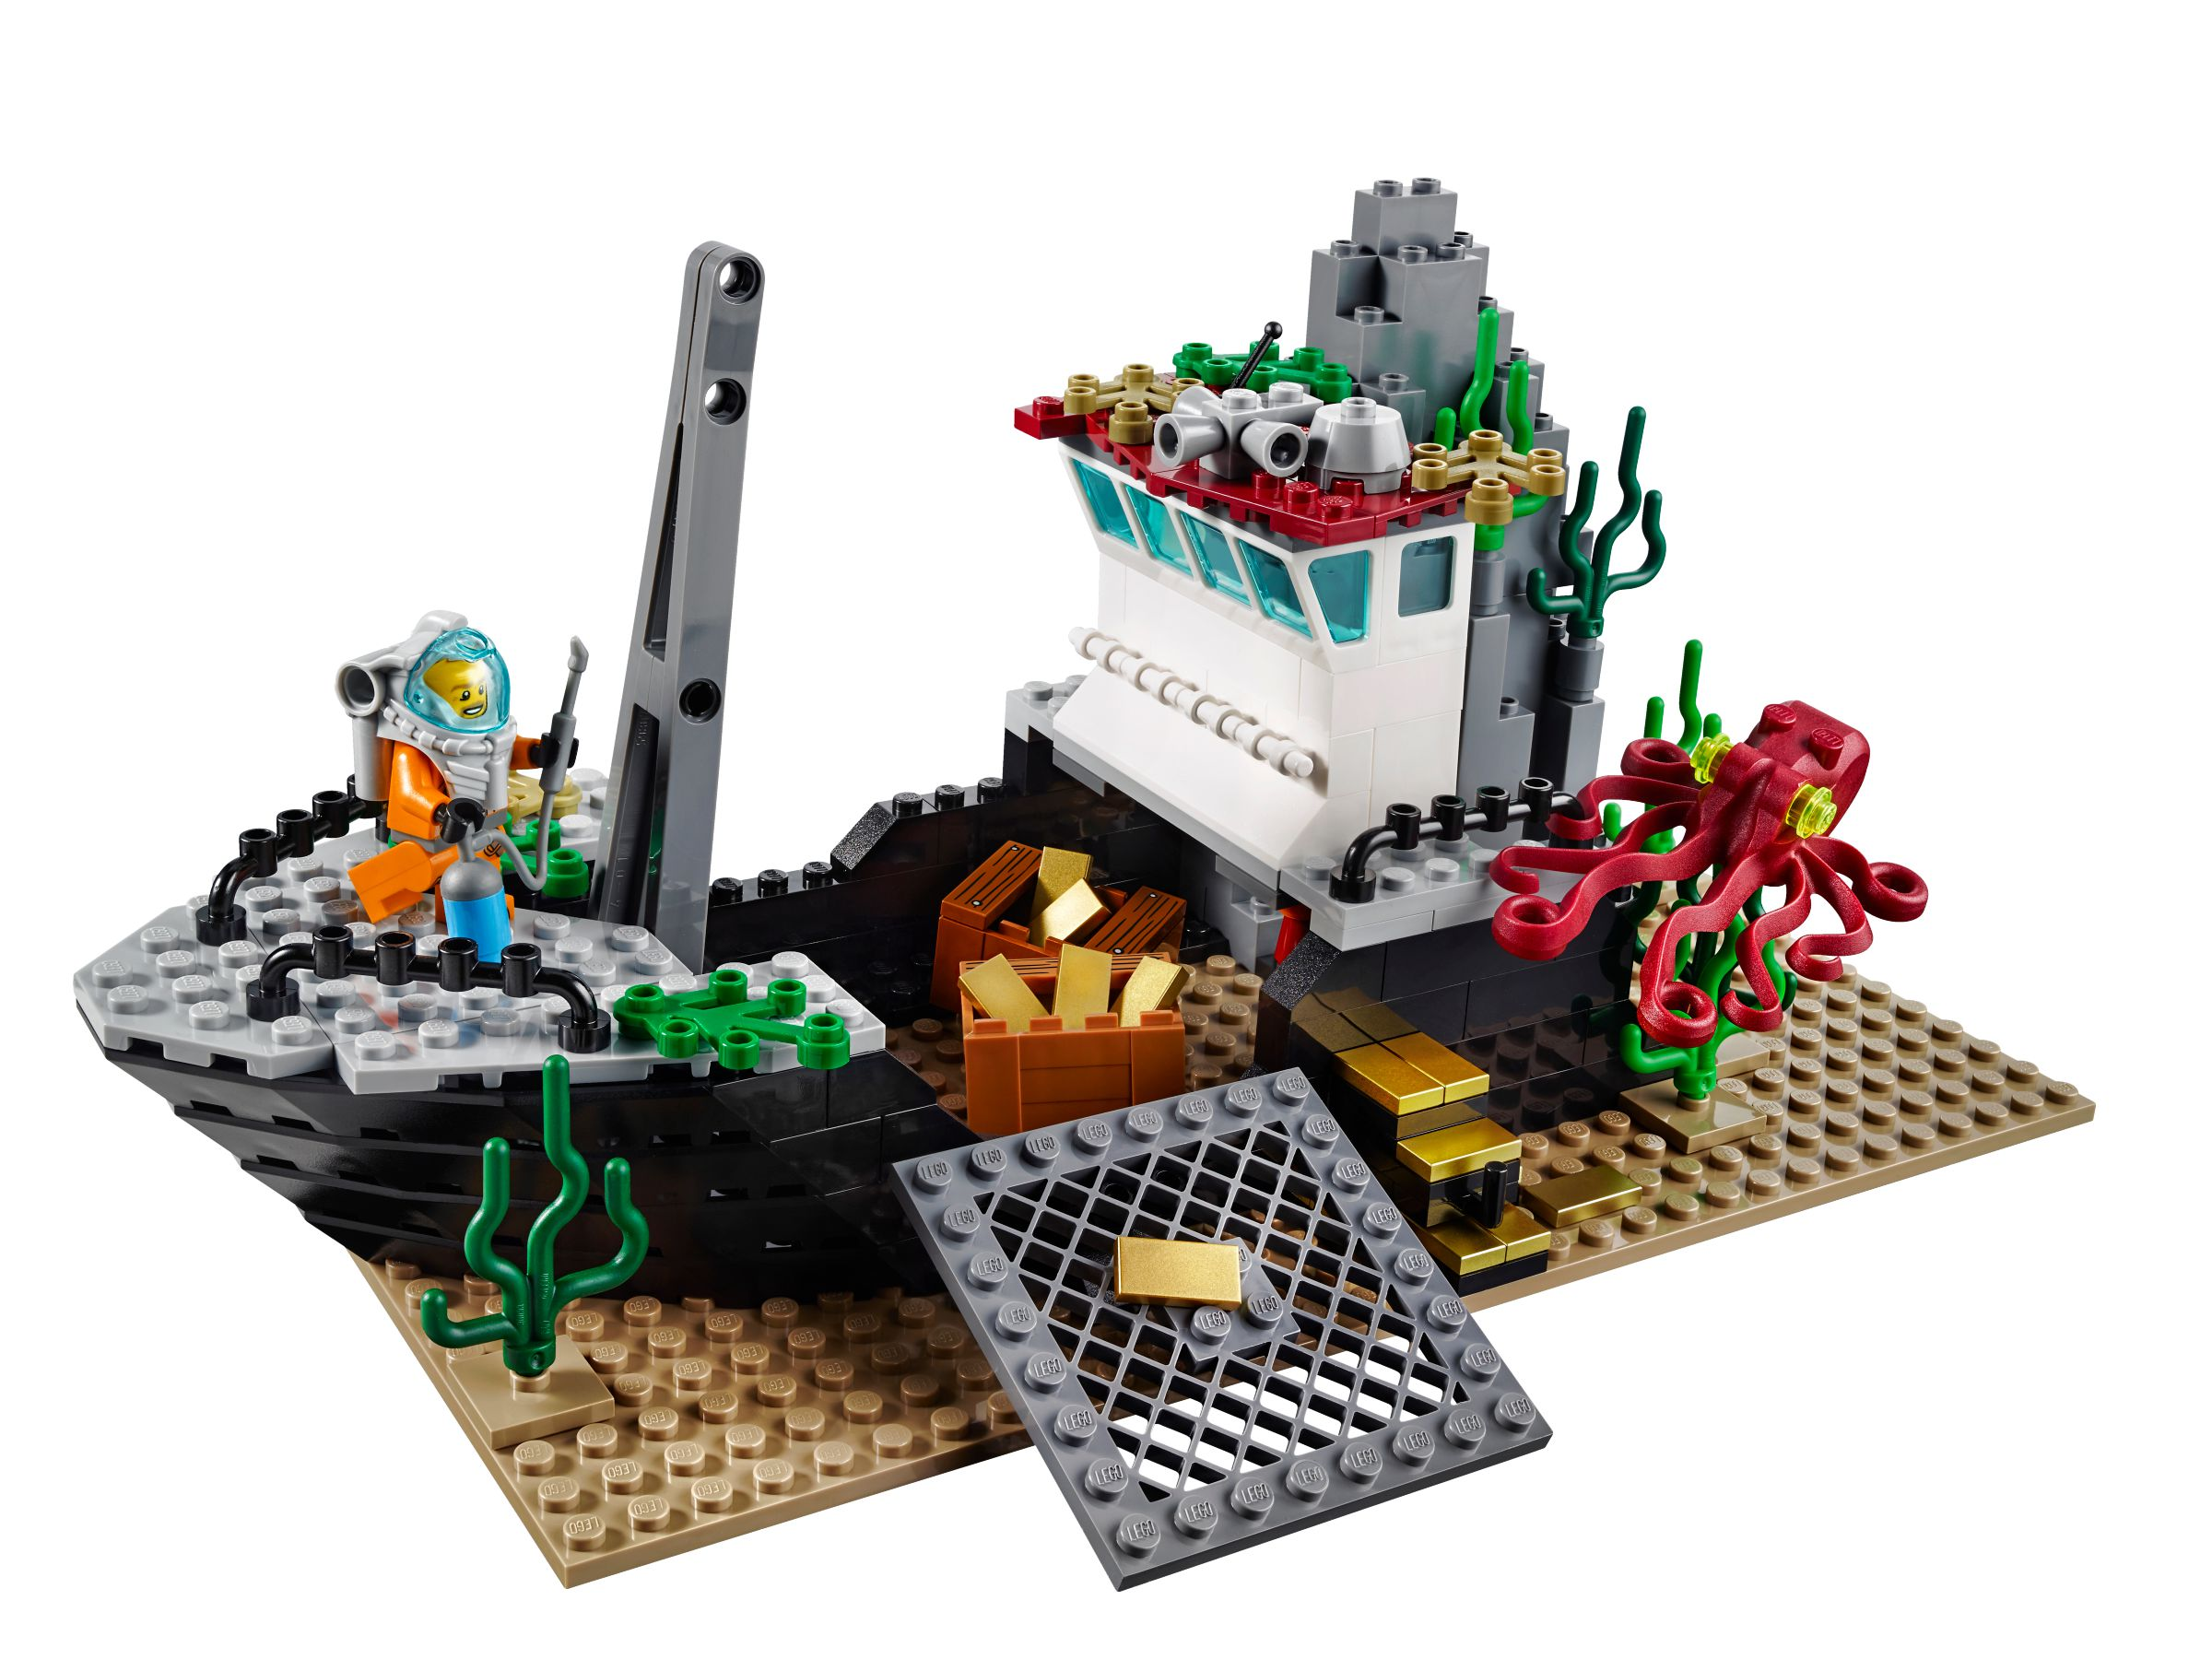 LEGO City 60095 Tiefsee-Expeditionsschiff LEGO_60095_alt3.jpg